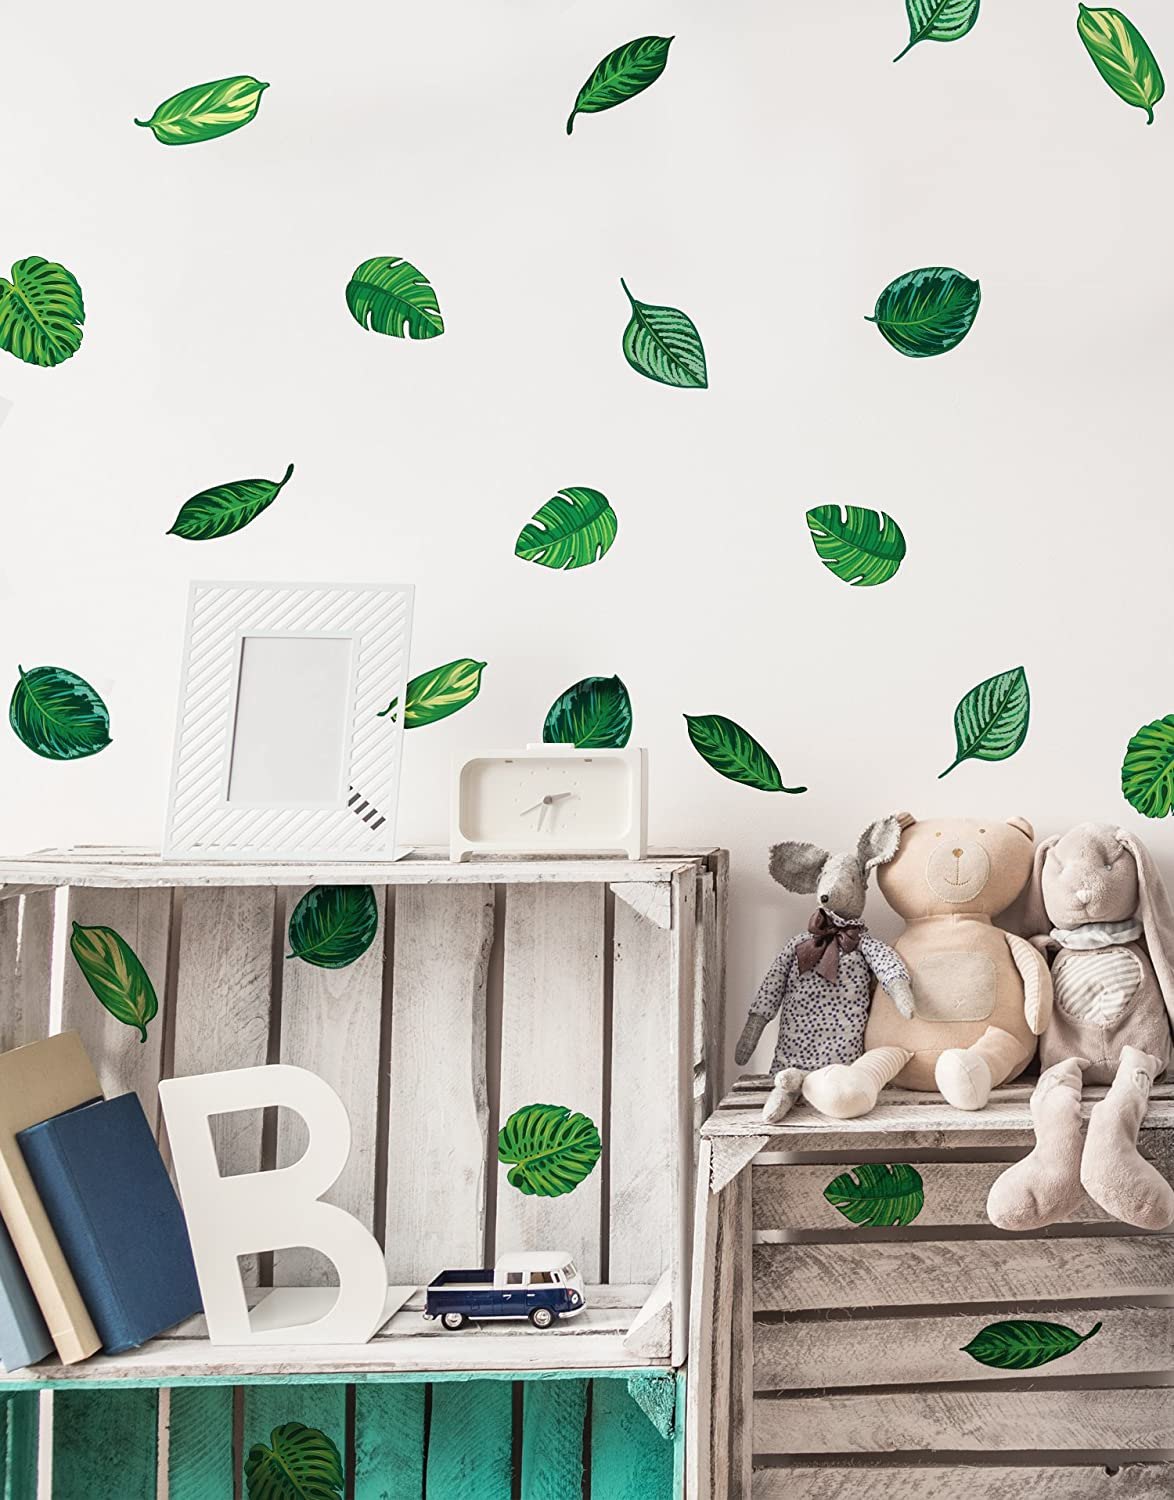 Amazon com stickerbrand set of 48 tropical plant leaves wall decal hawaiian party beach theme decor great for birthdays prom wedding events 6094m